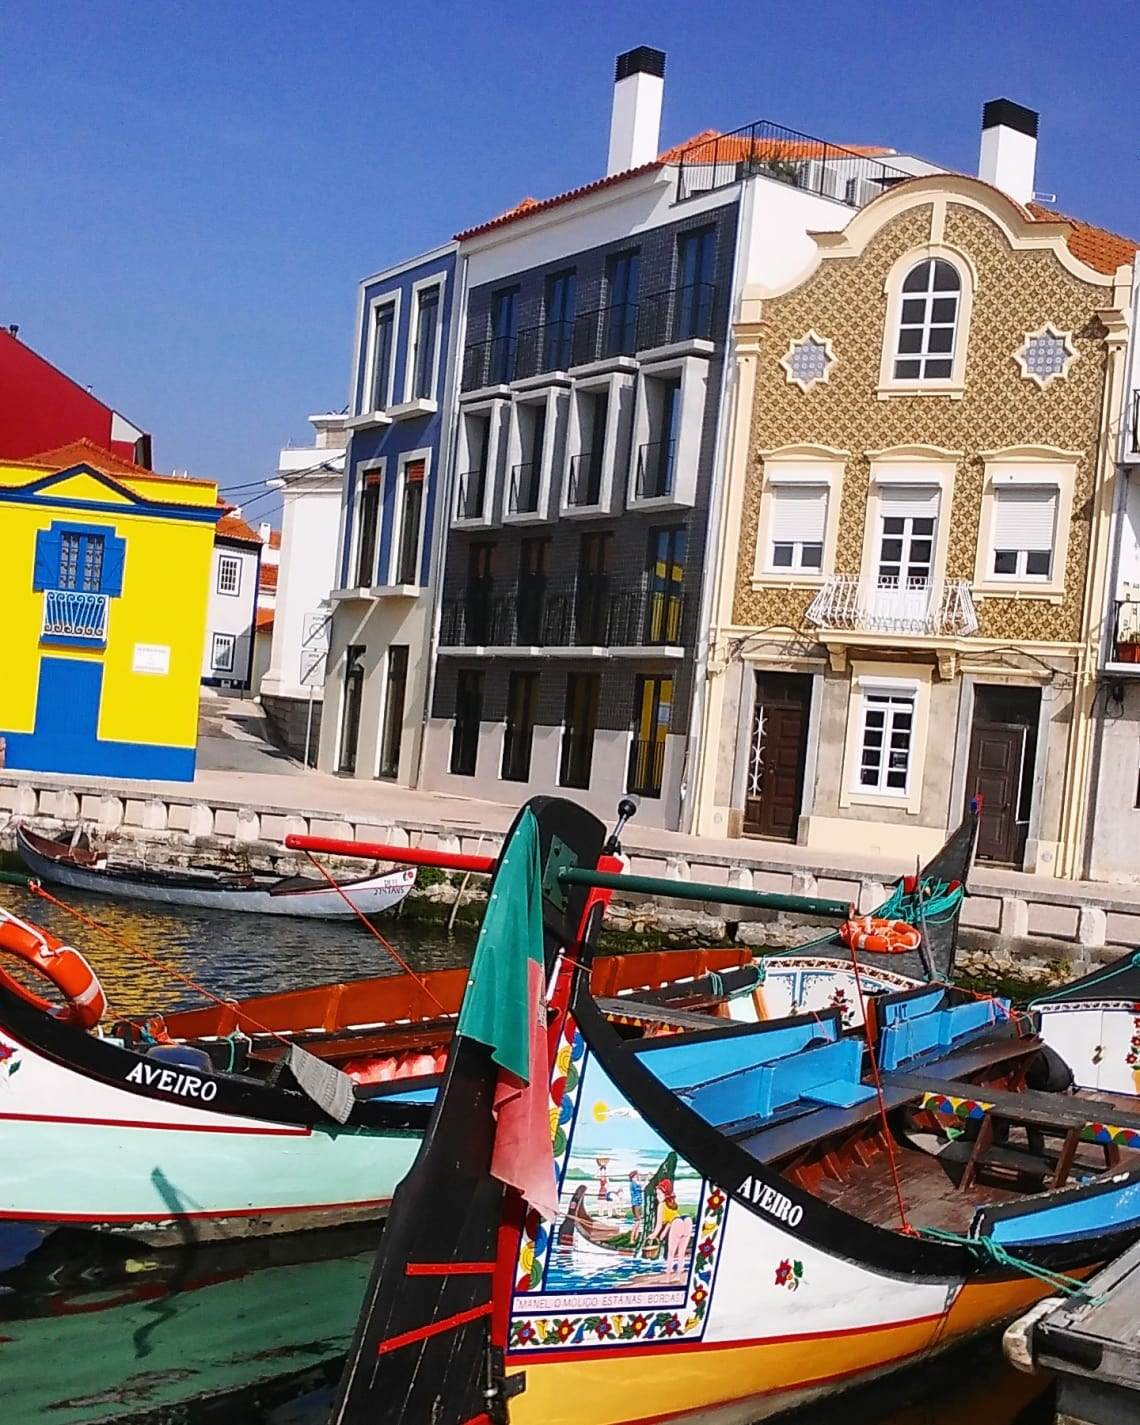 budget travel guide to aveiro boats